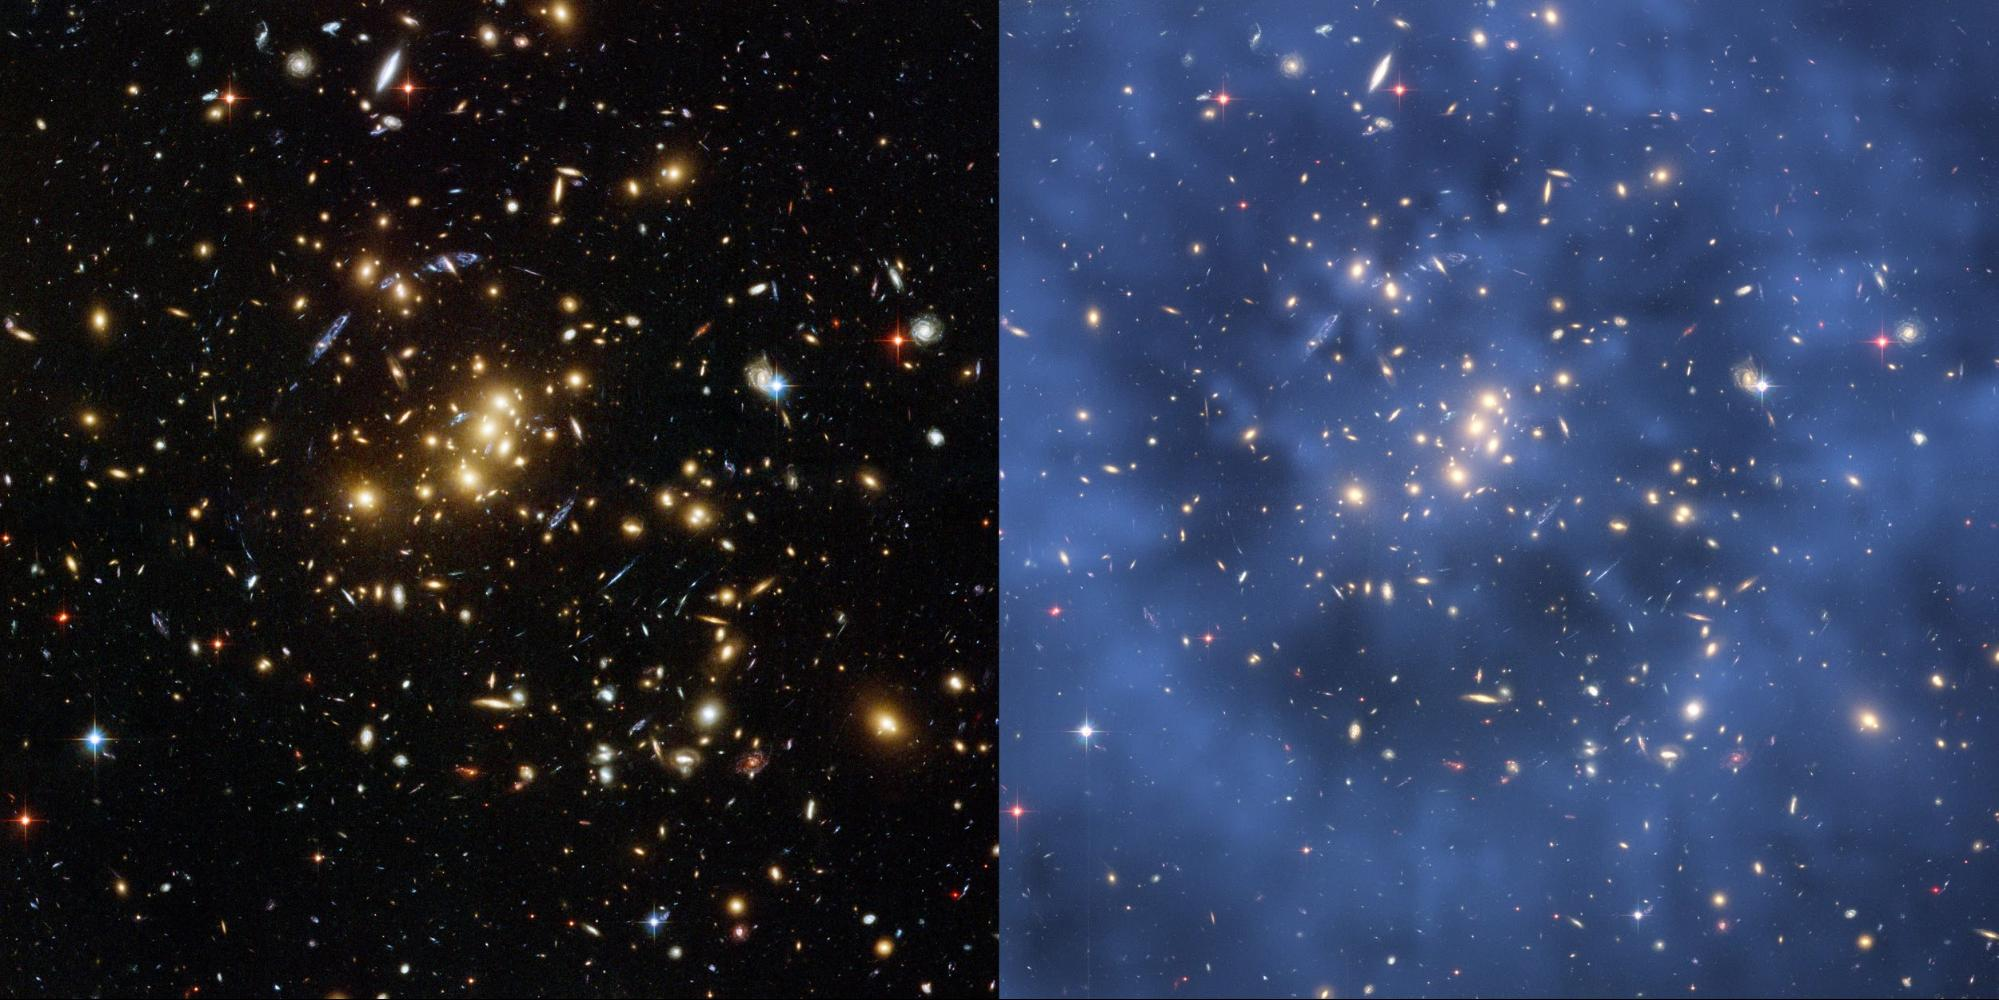 side-by-side images of galaxy cluster